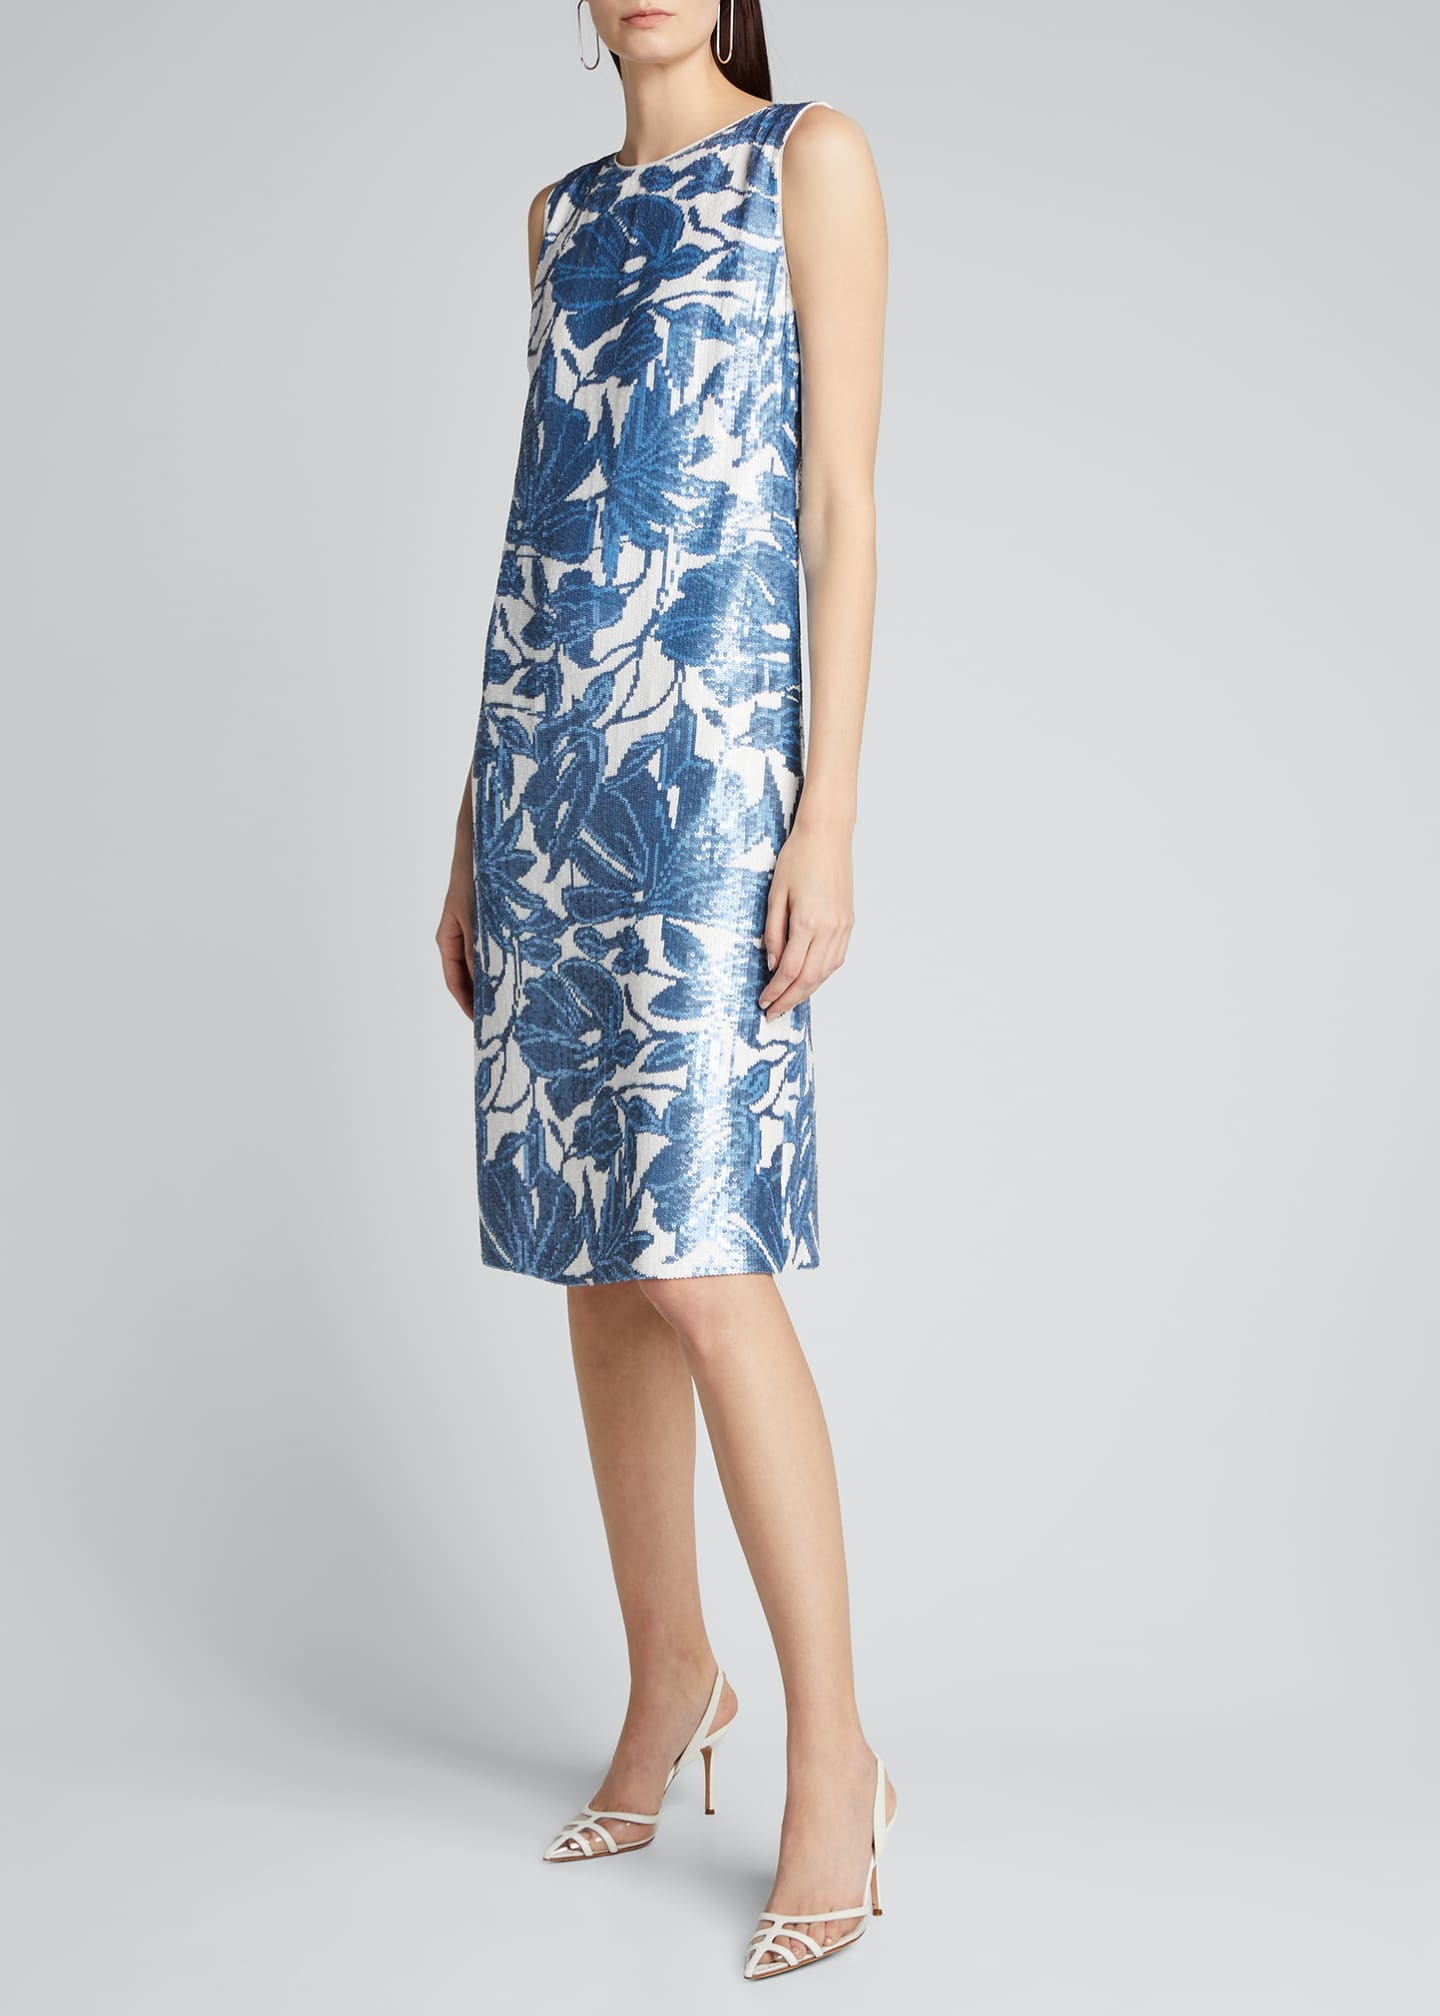 Image 1 of 5: Noah Floral Sequined Sleeveless Dress